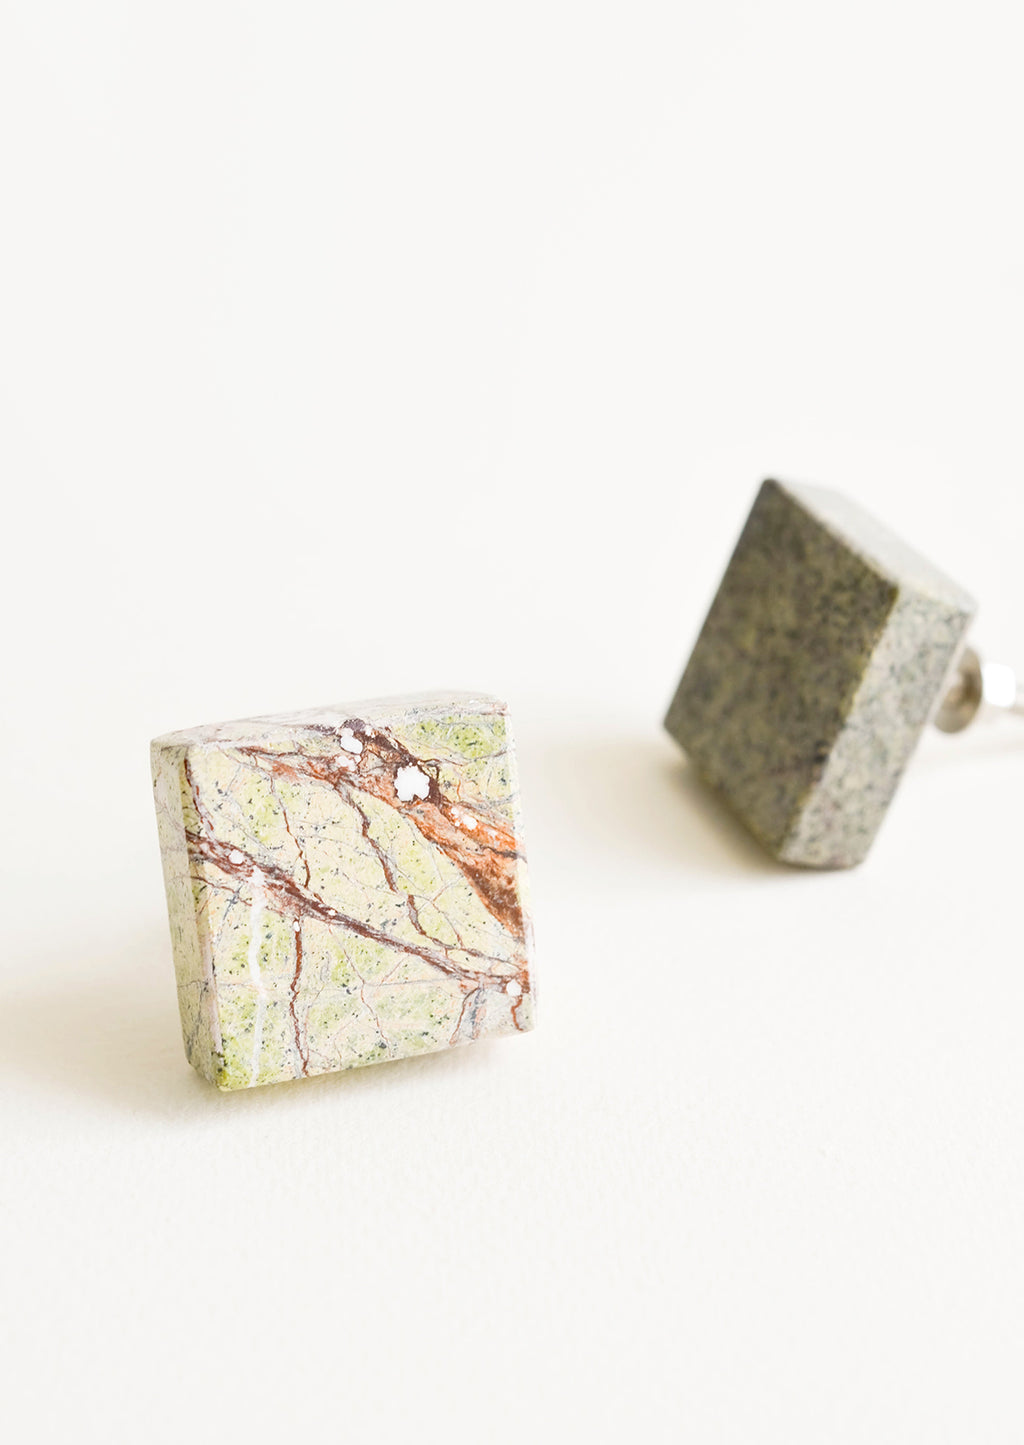 Green Multi: Square stone knob with natural shades of green, orange and brown